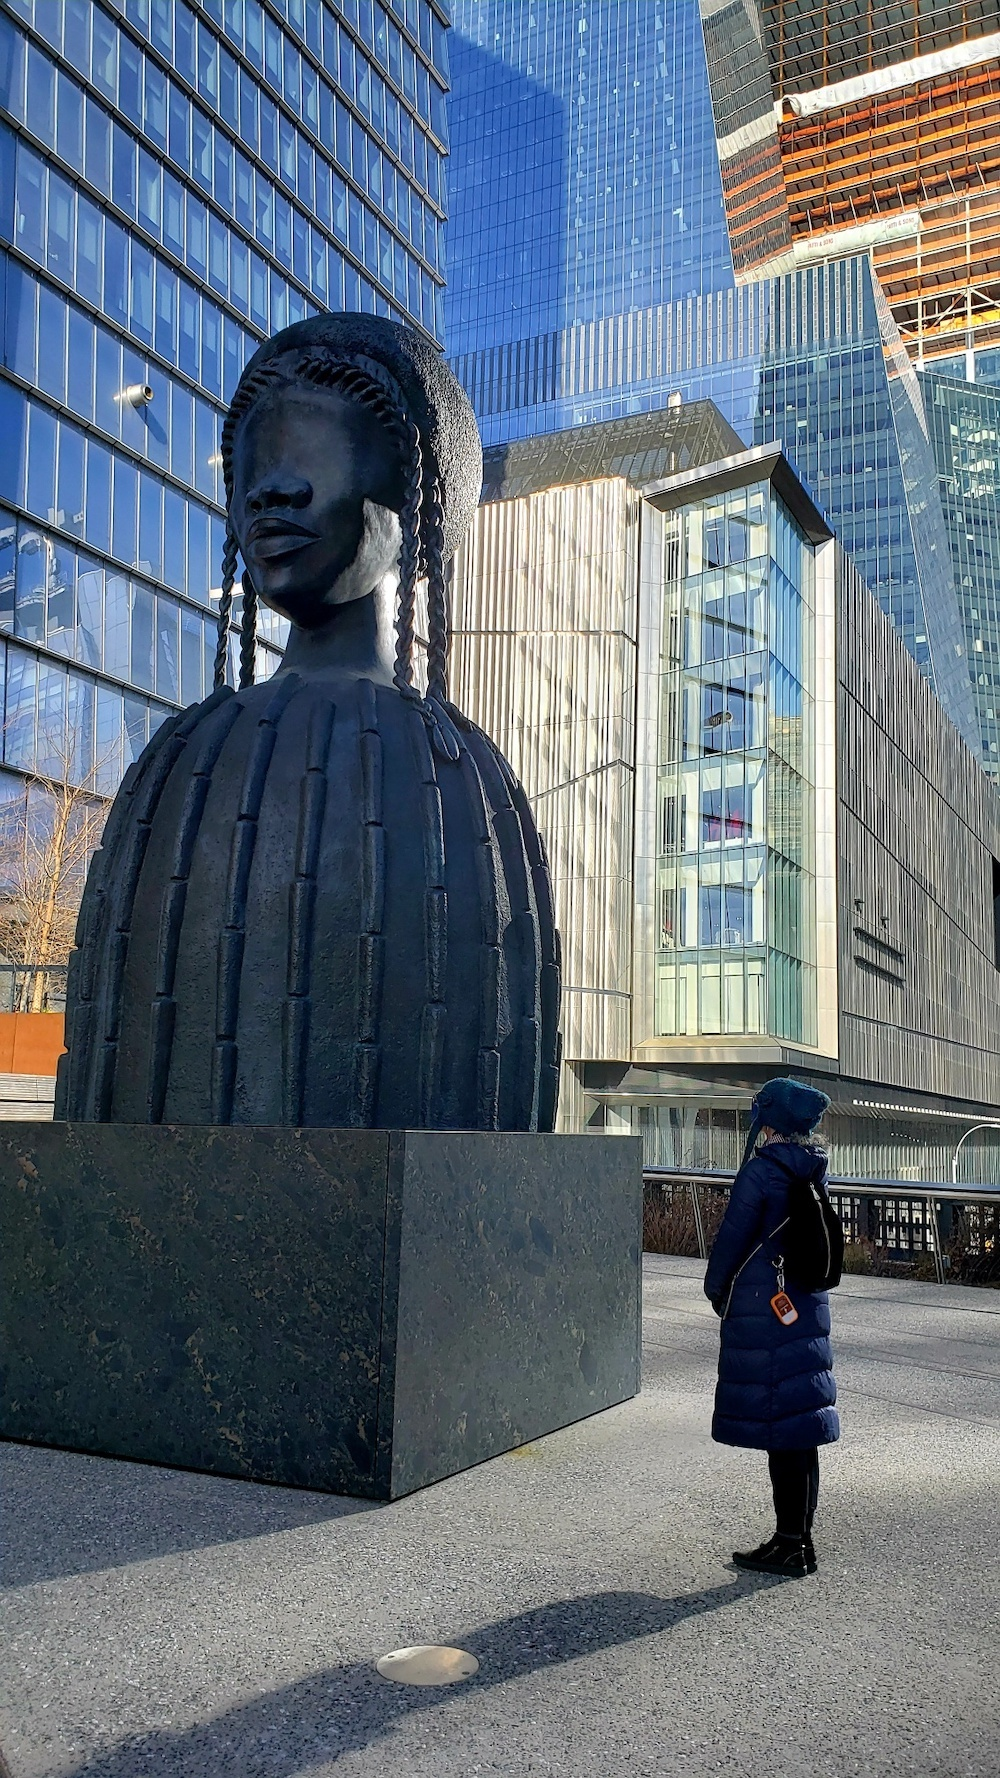 A woman in a winter coat standing and looking at an abstract statue of a black woman with braids.